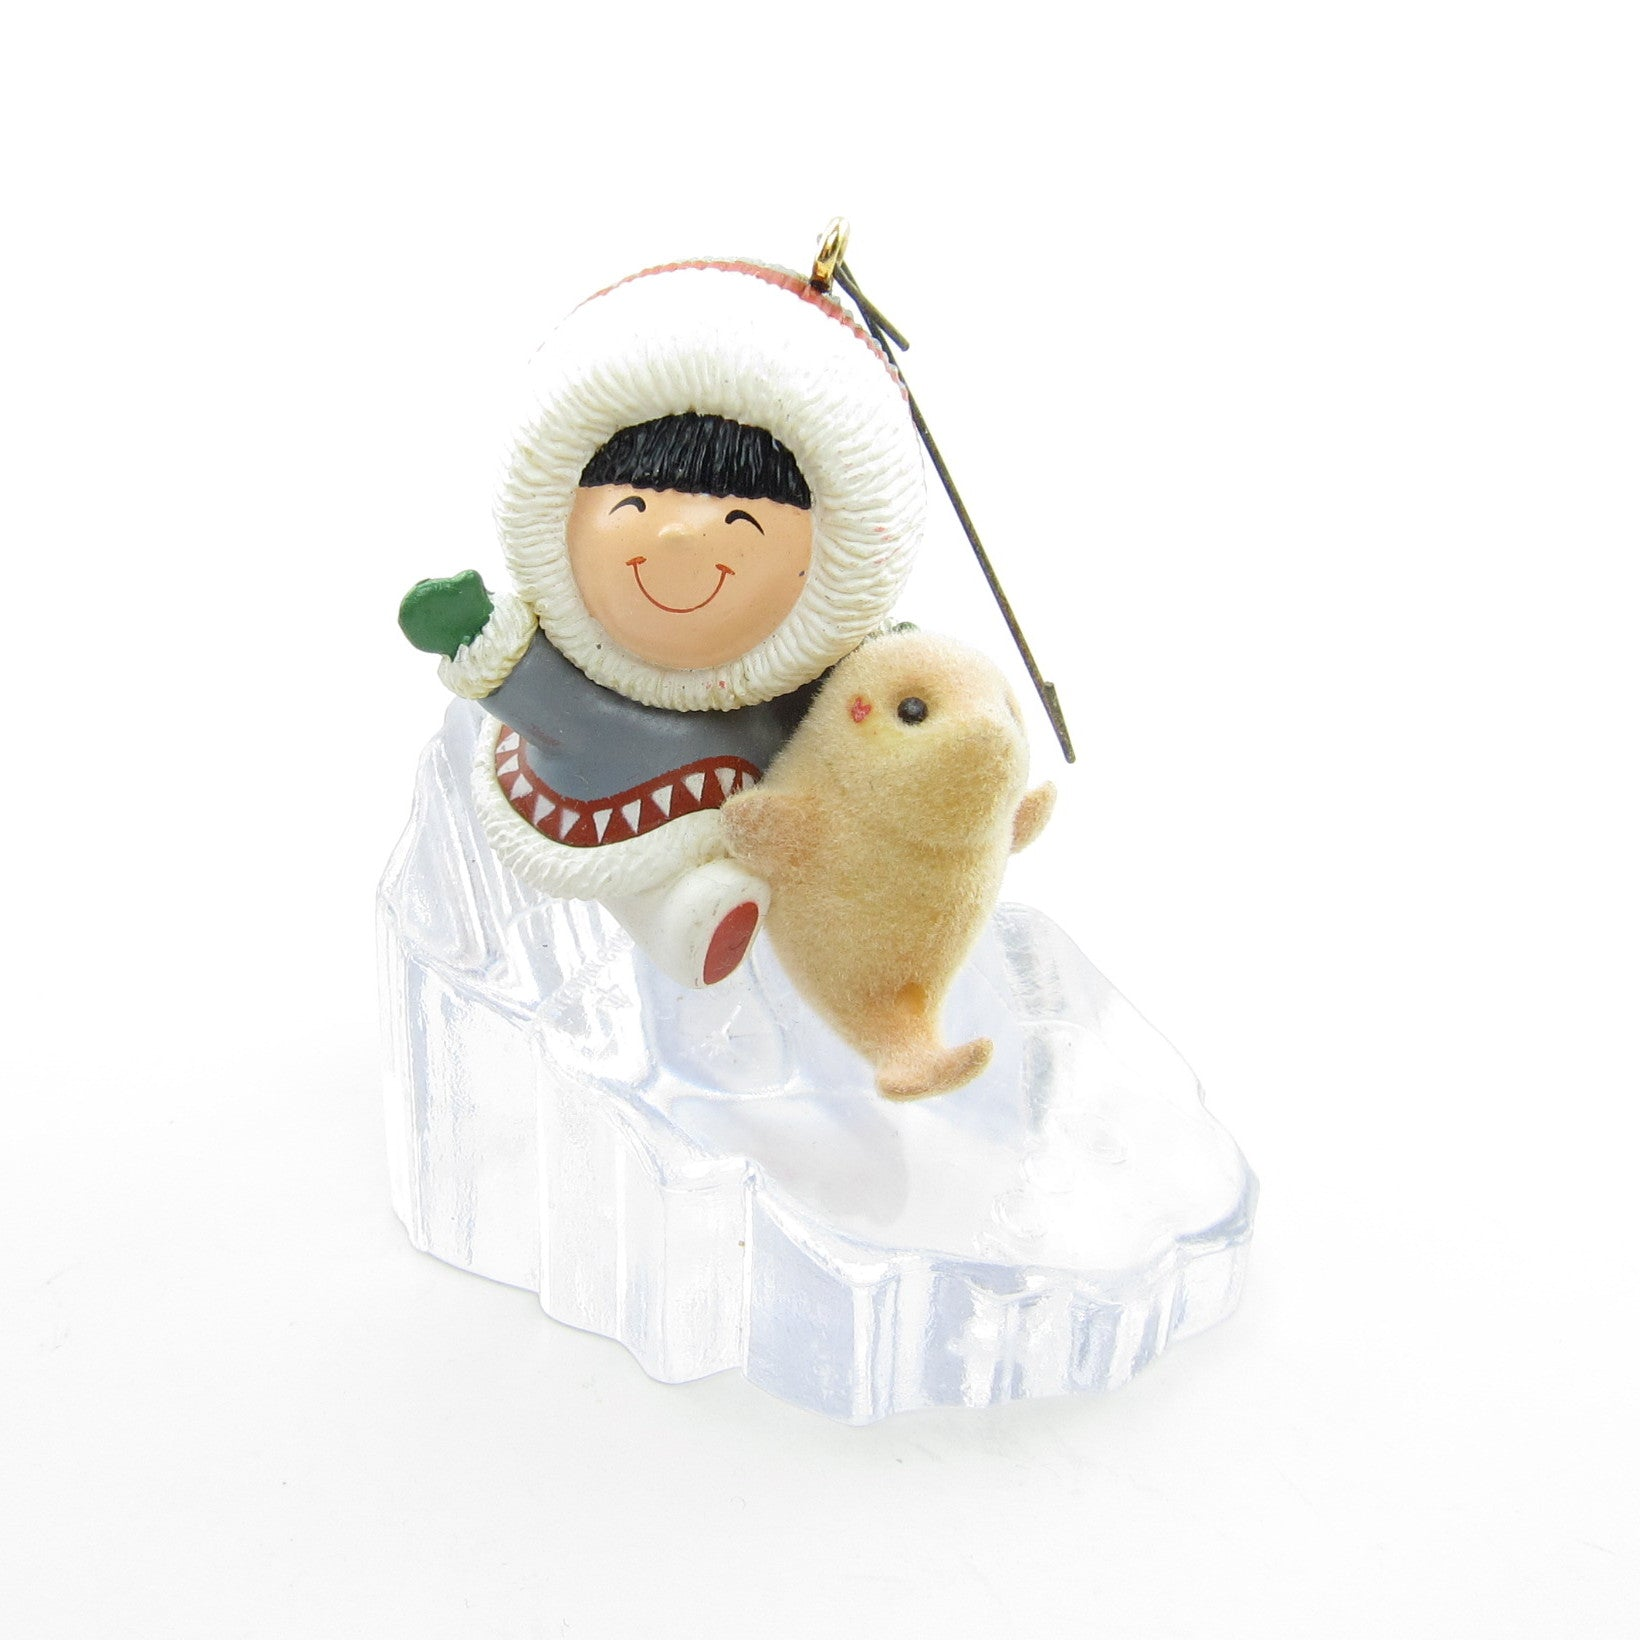 Hallmark Frosty Friends #11 1990 Hallmark Christmas Ornament